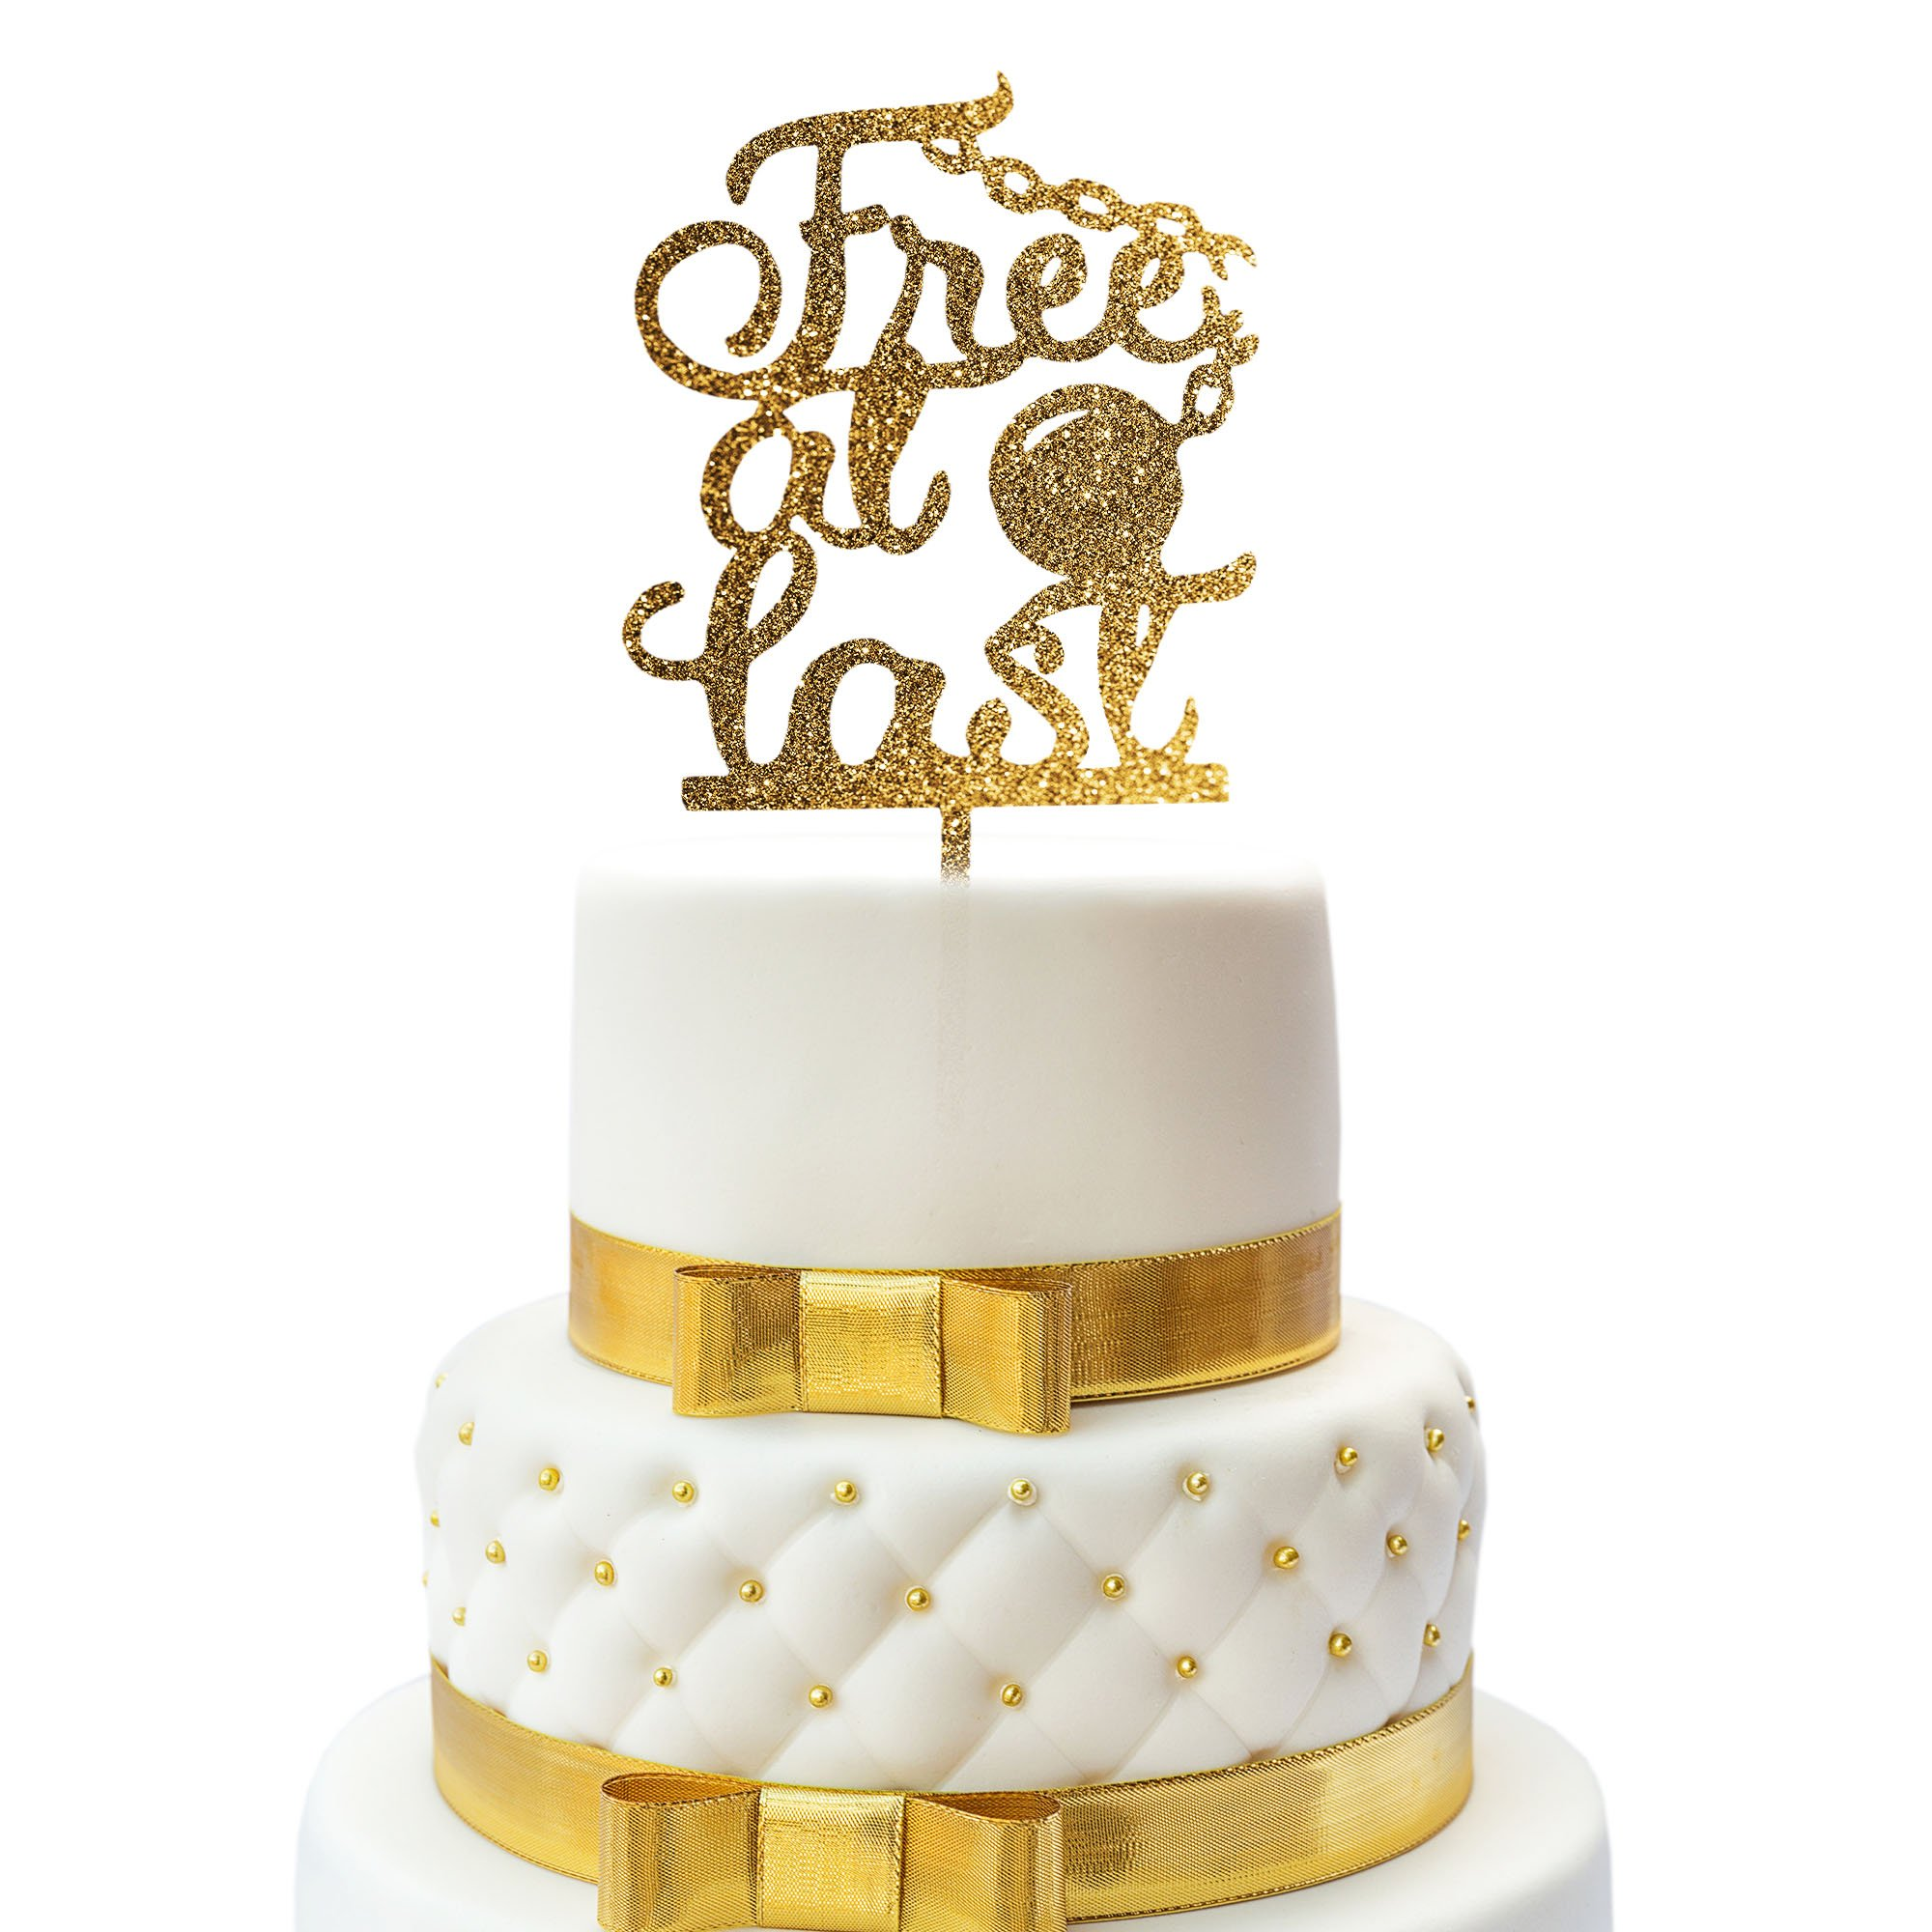 JennyGems Cake Topper - Divorce Party, Just Divorced, Break Up Party, Relationship Ends Party Cake Topper - Free At Last by JennyGems